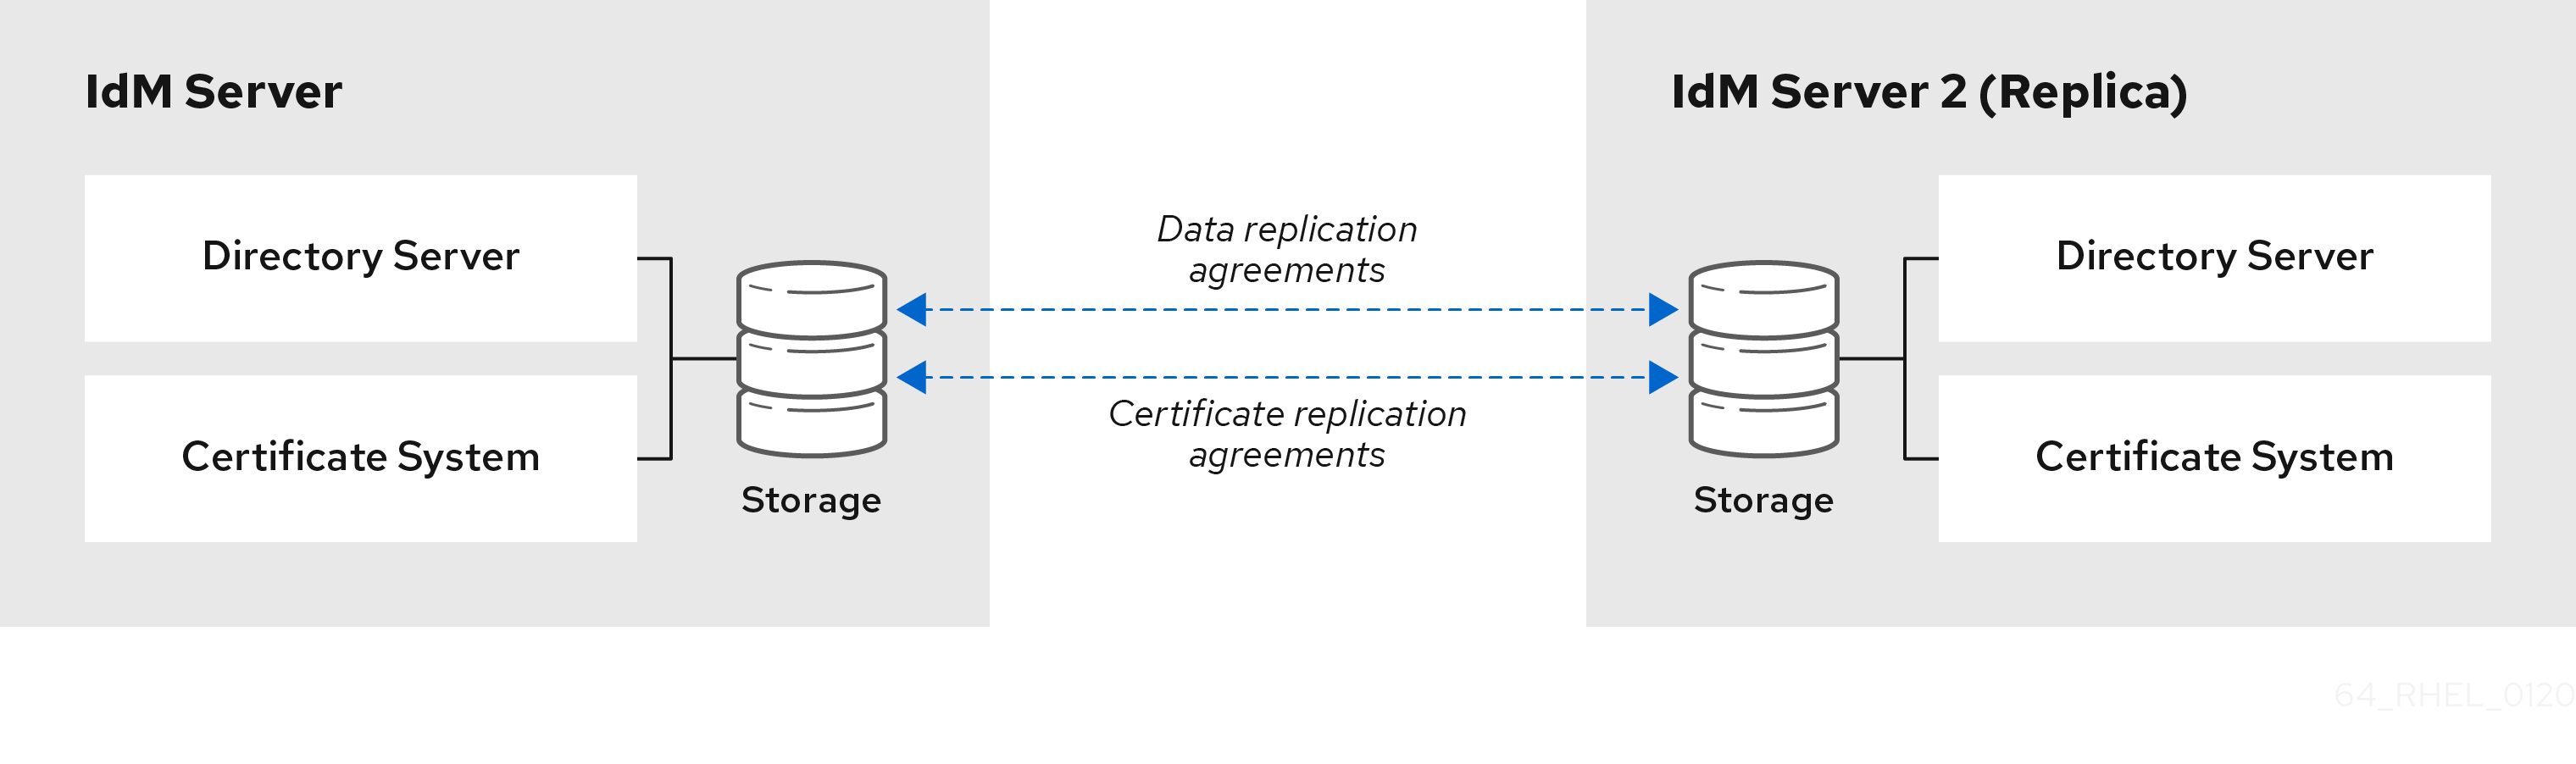 An image of two servers with two sets of replication agreements between them: a data replication agreement that pertains to their Directory Server database